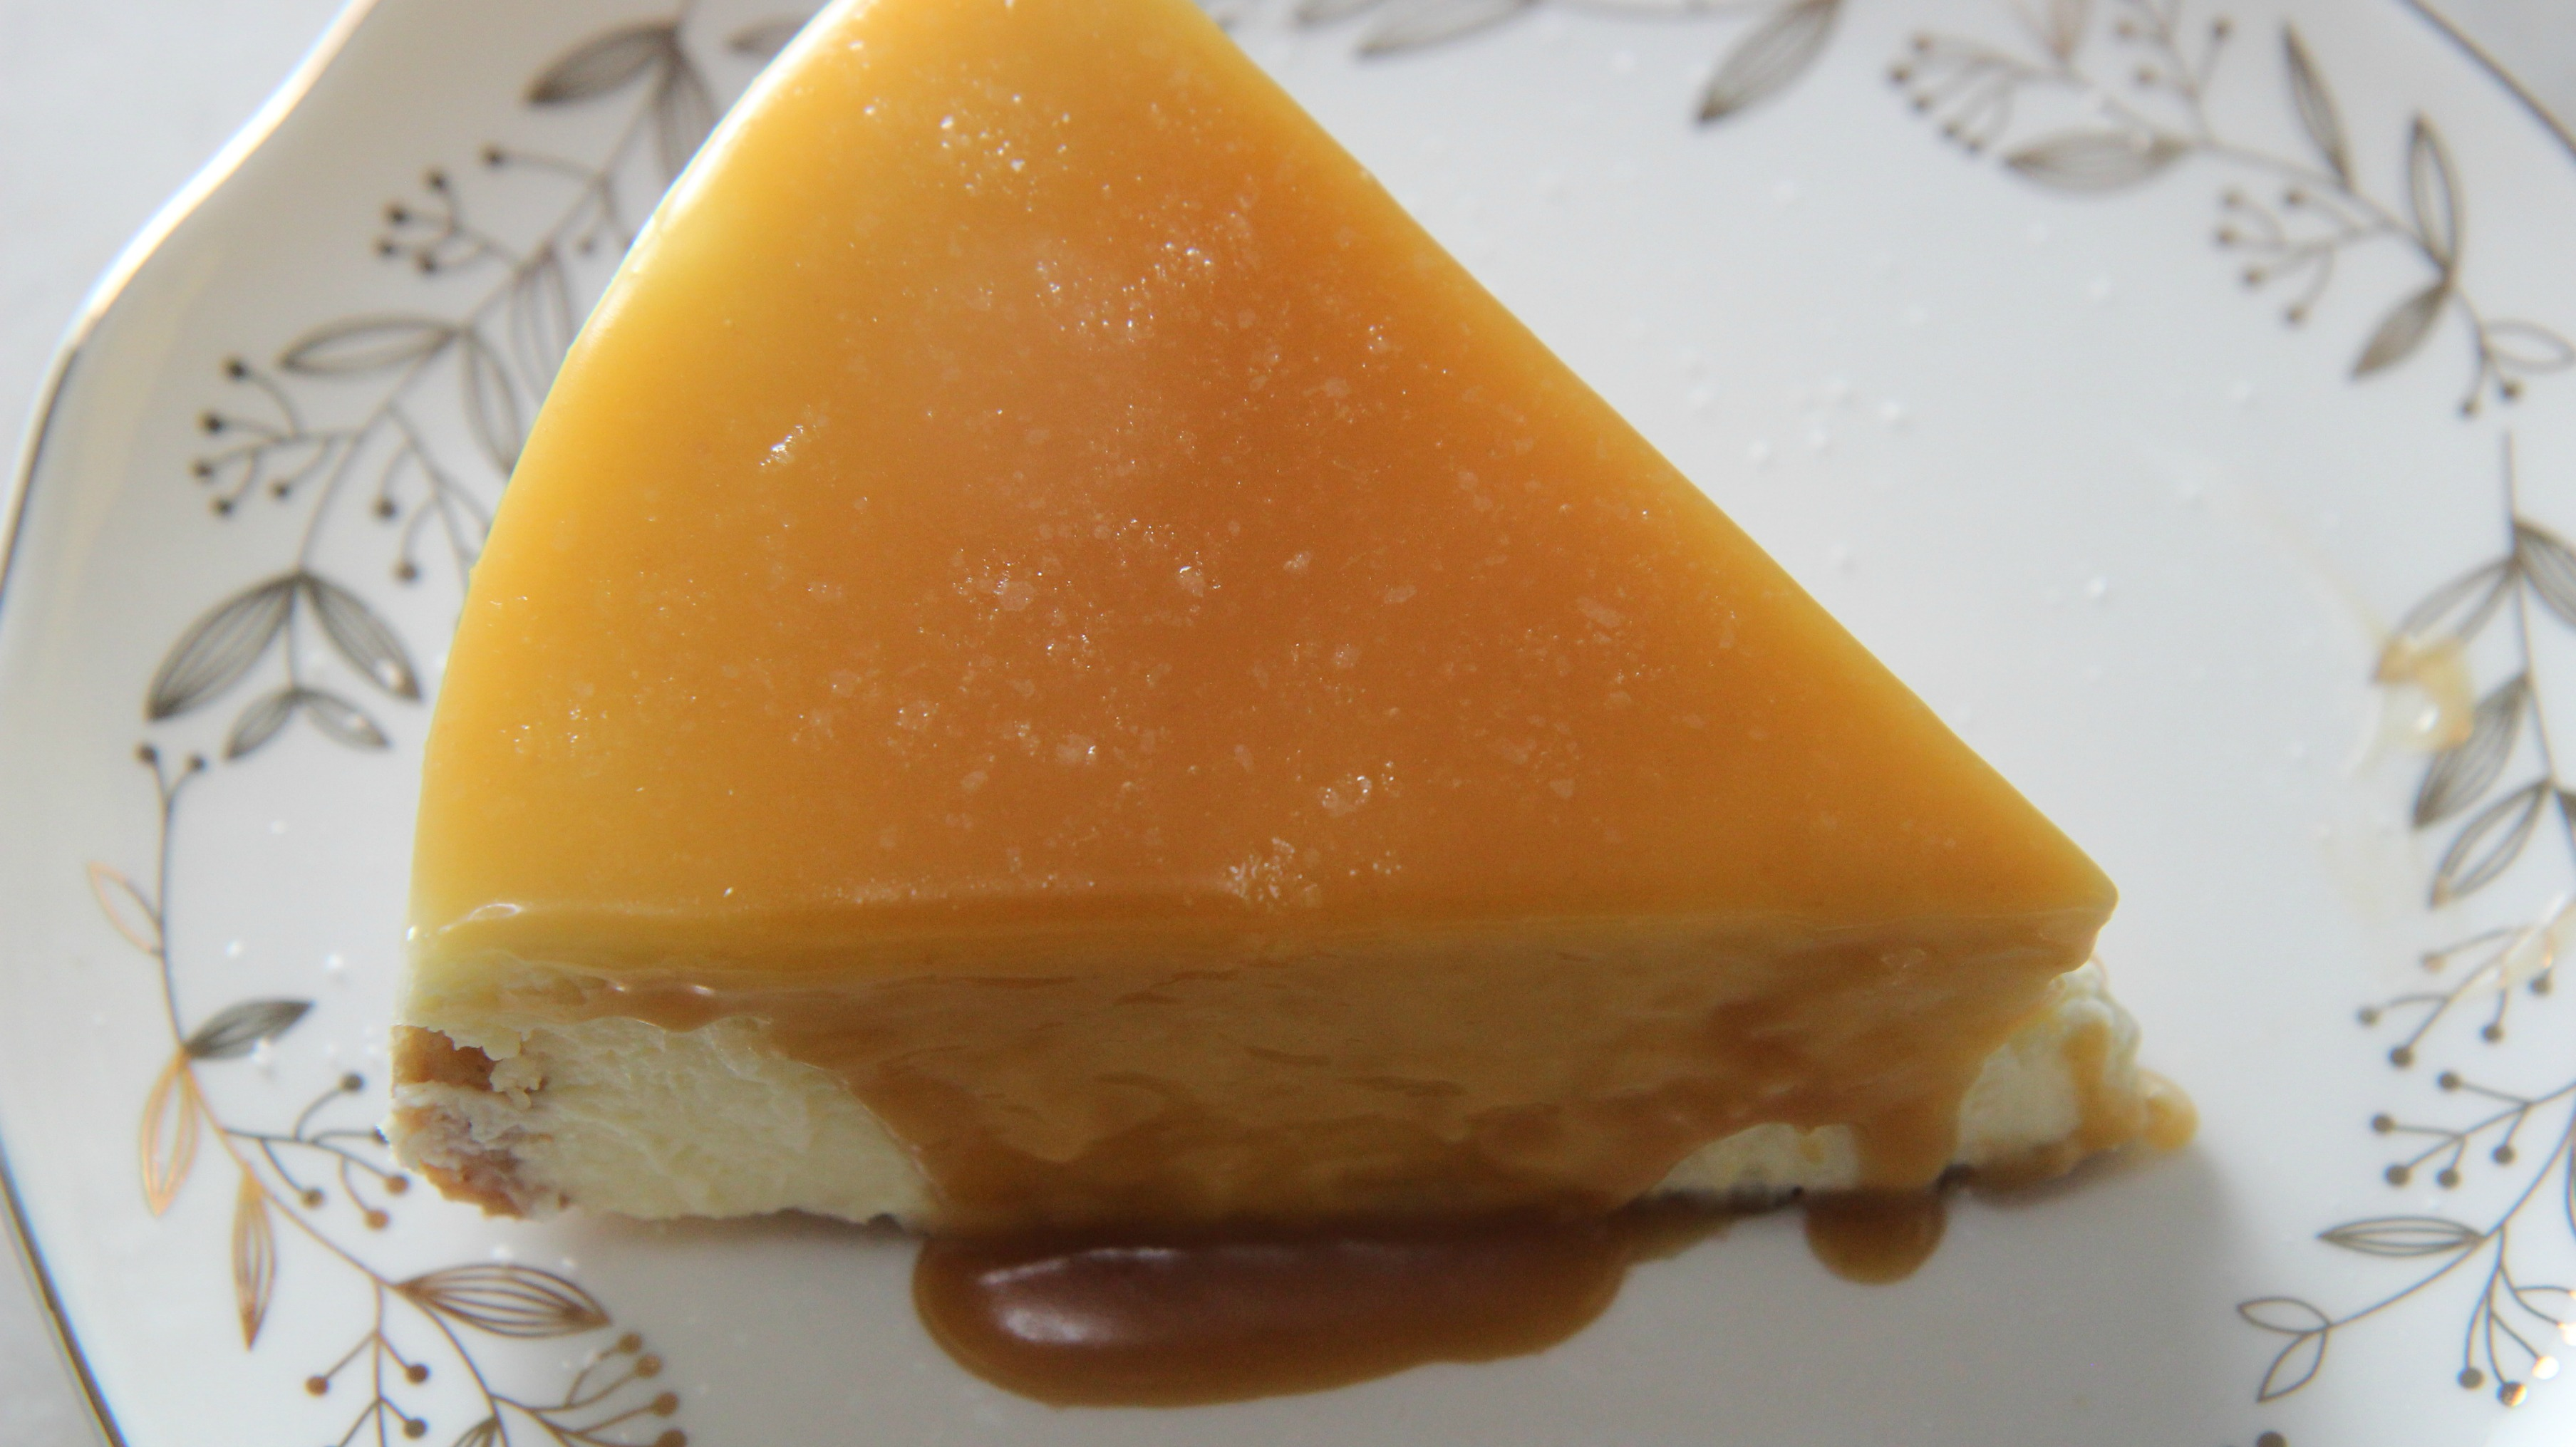 This causes a wonderful sheen and you can see the richness in the caramel